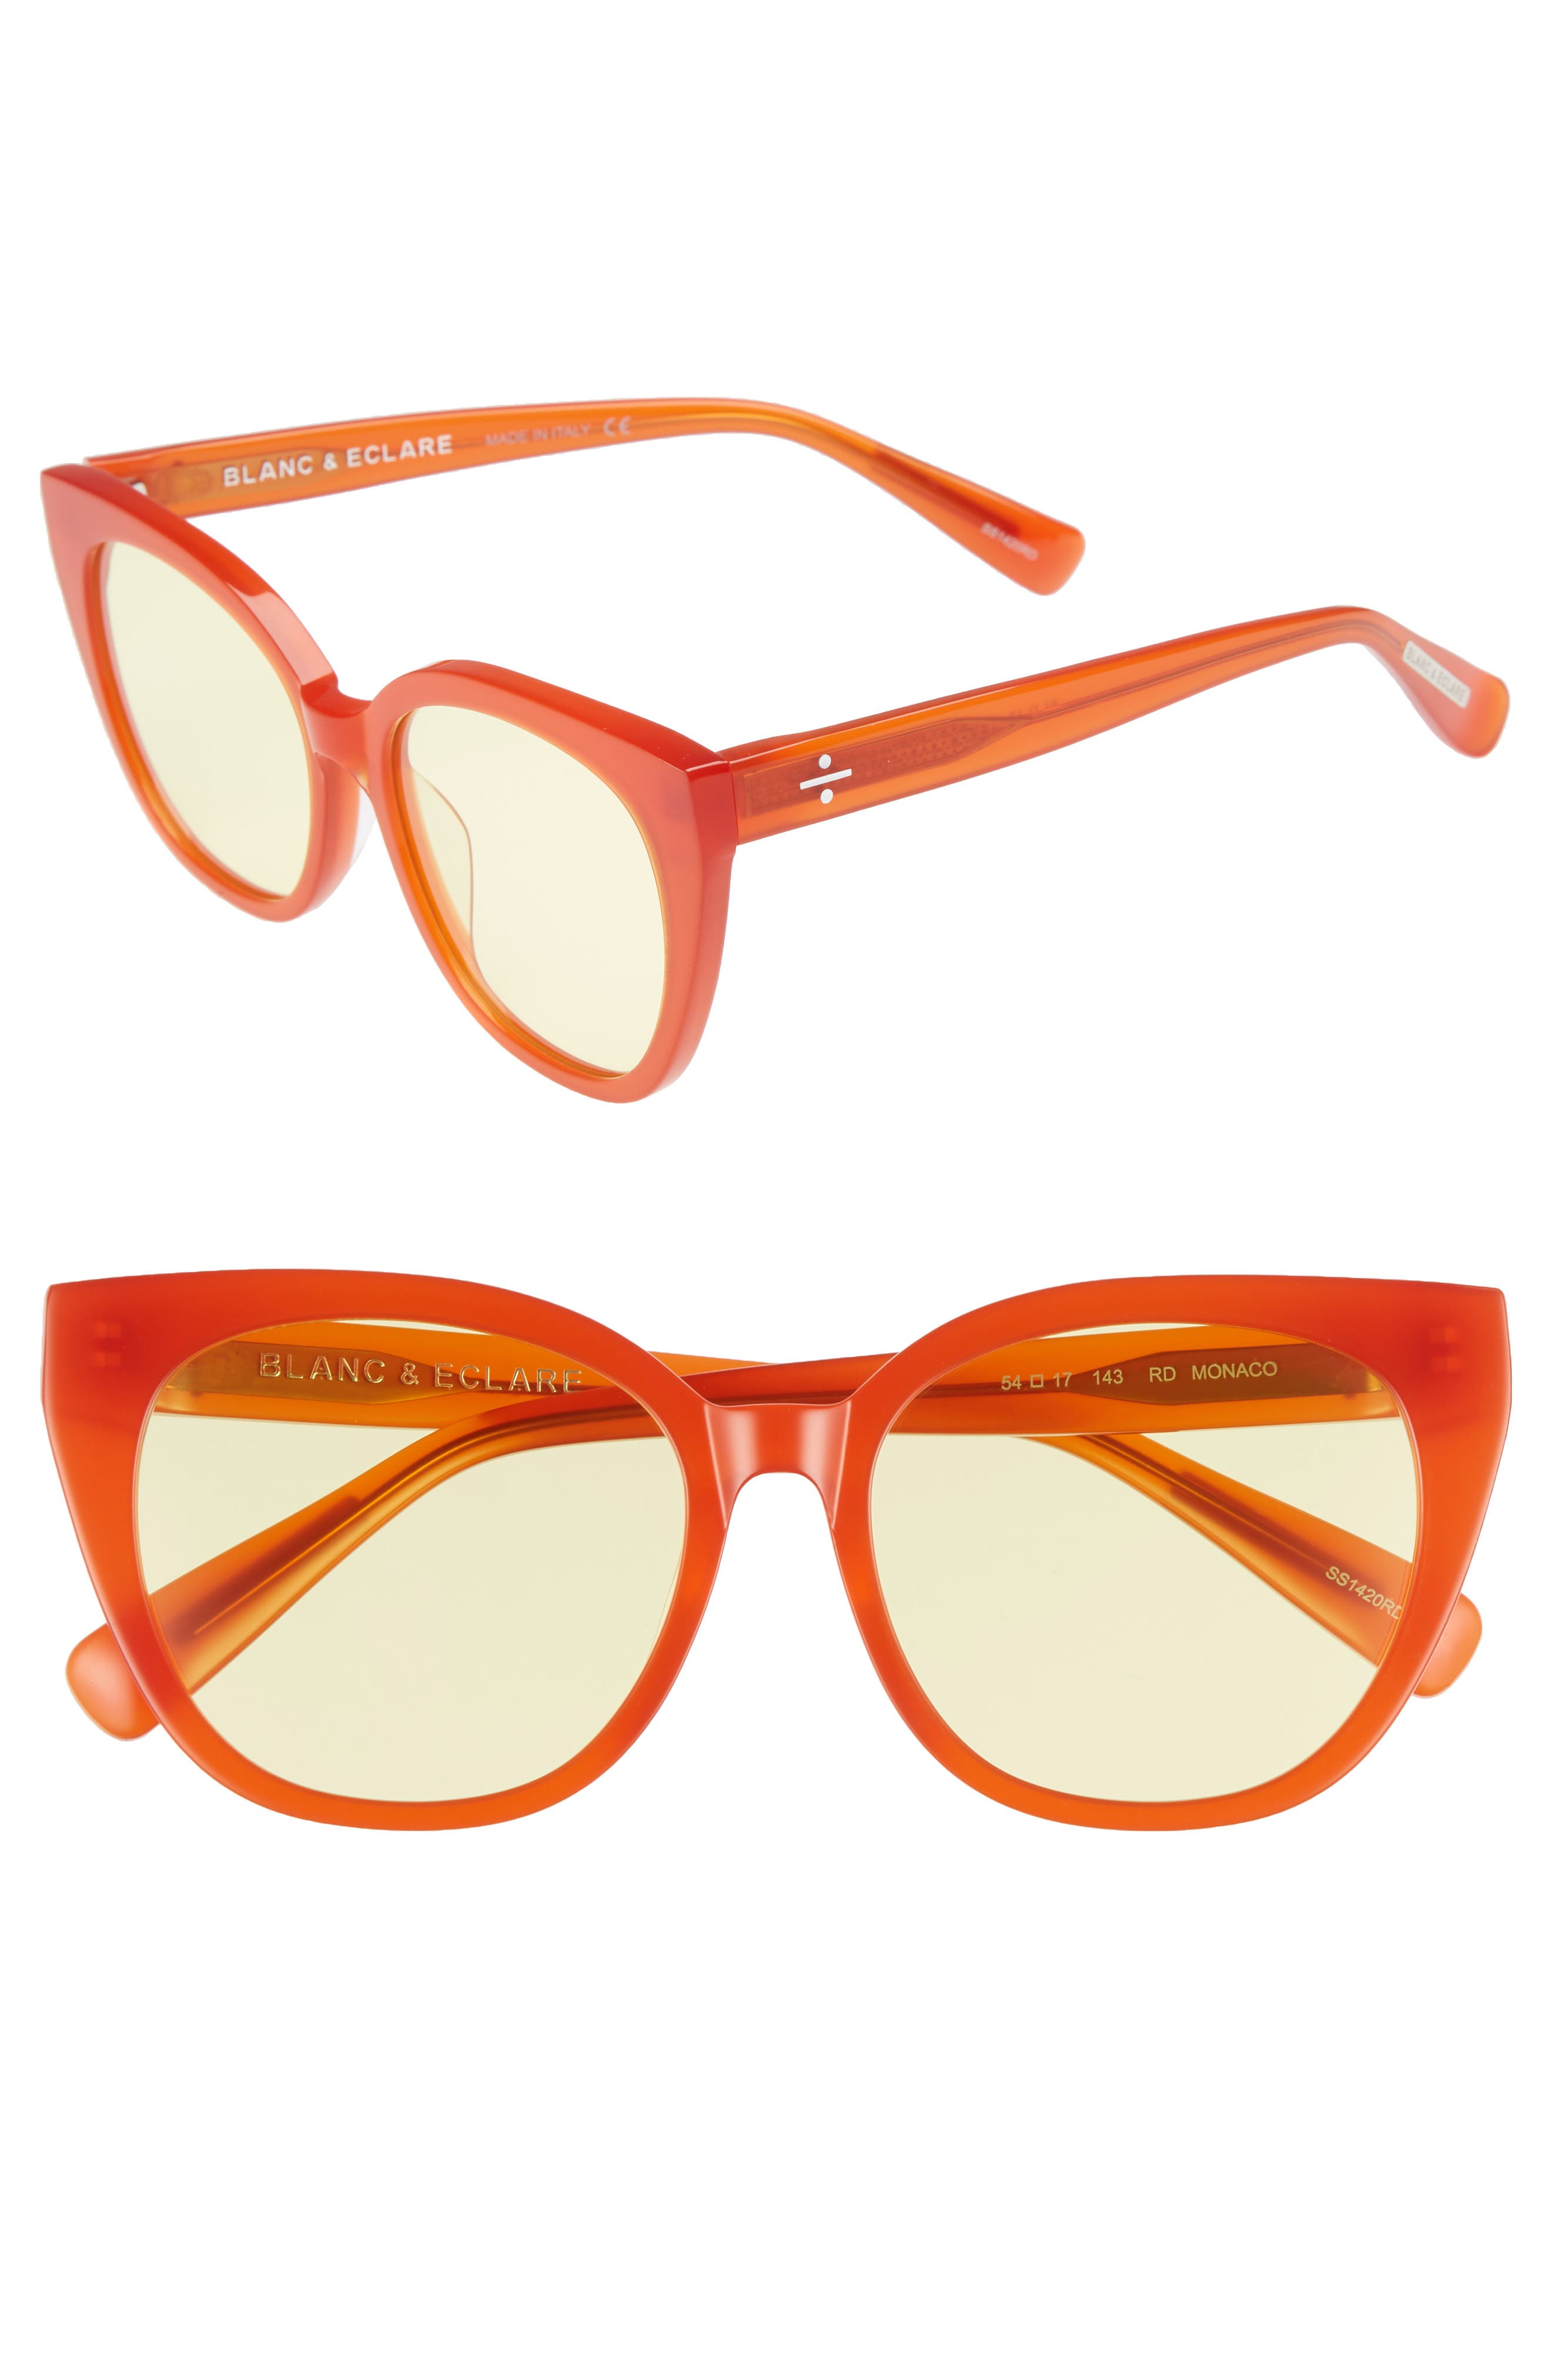 BLANC & ECLARE Monaco 54mm Polarized Cat Eye Sunglasses,                             Main thumbnail 1, color,                             Lipstick Red/ Yellow Tint